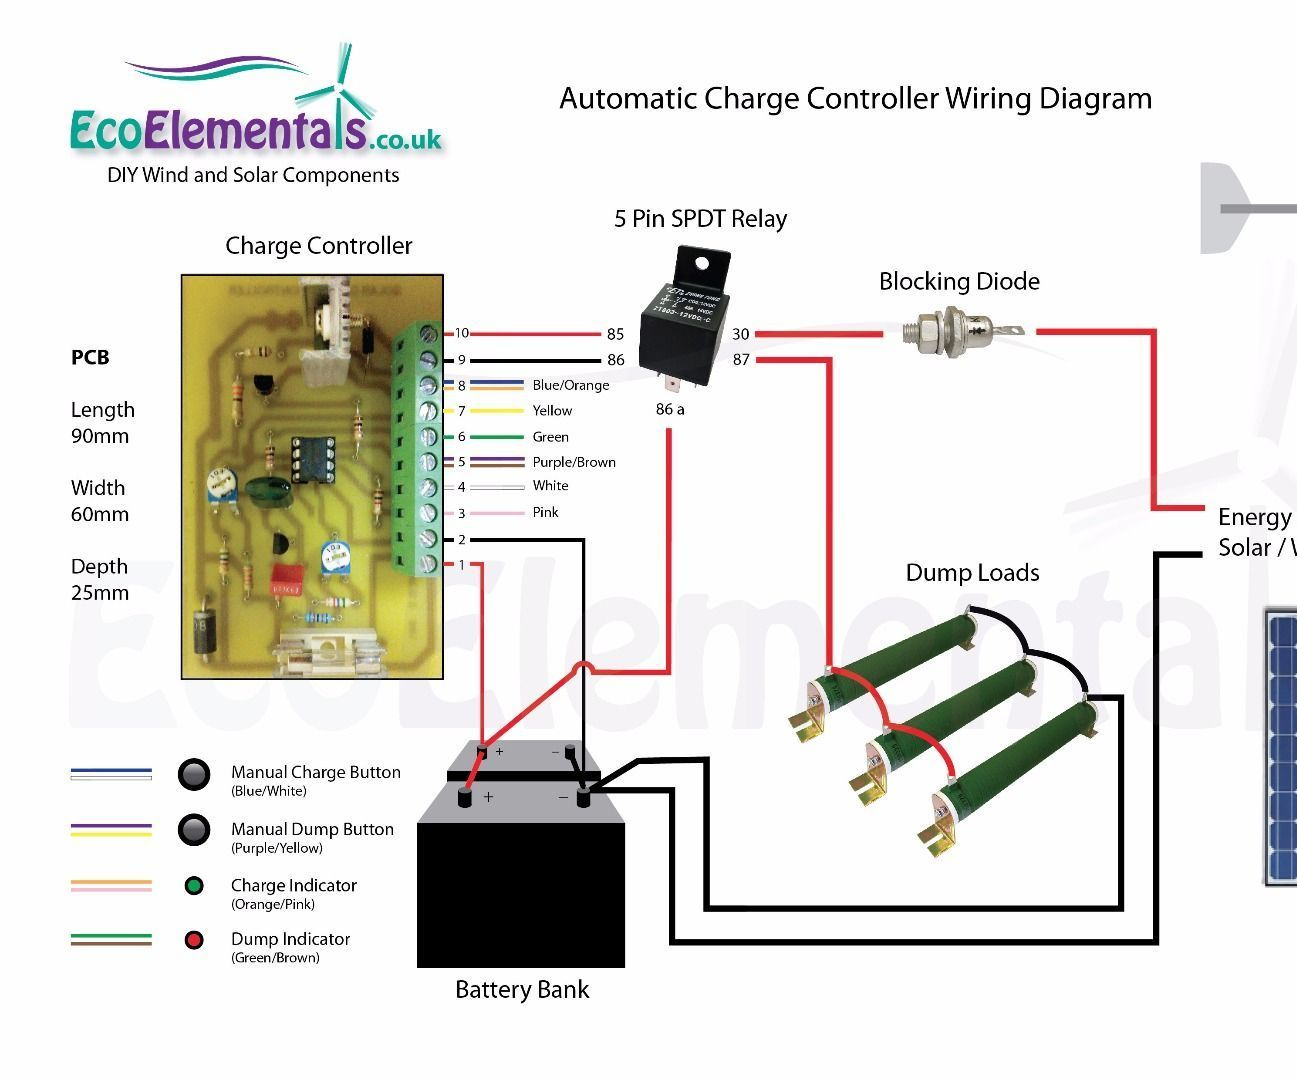 medium resolution of charge controller wiring diagram for diy wind turbine or solar panels